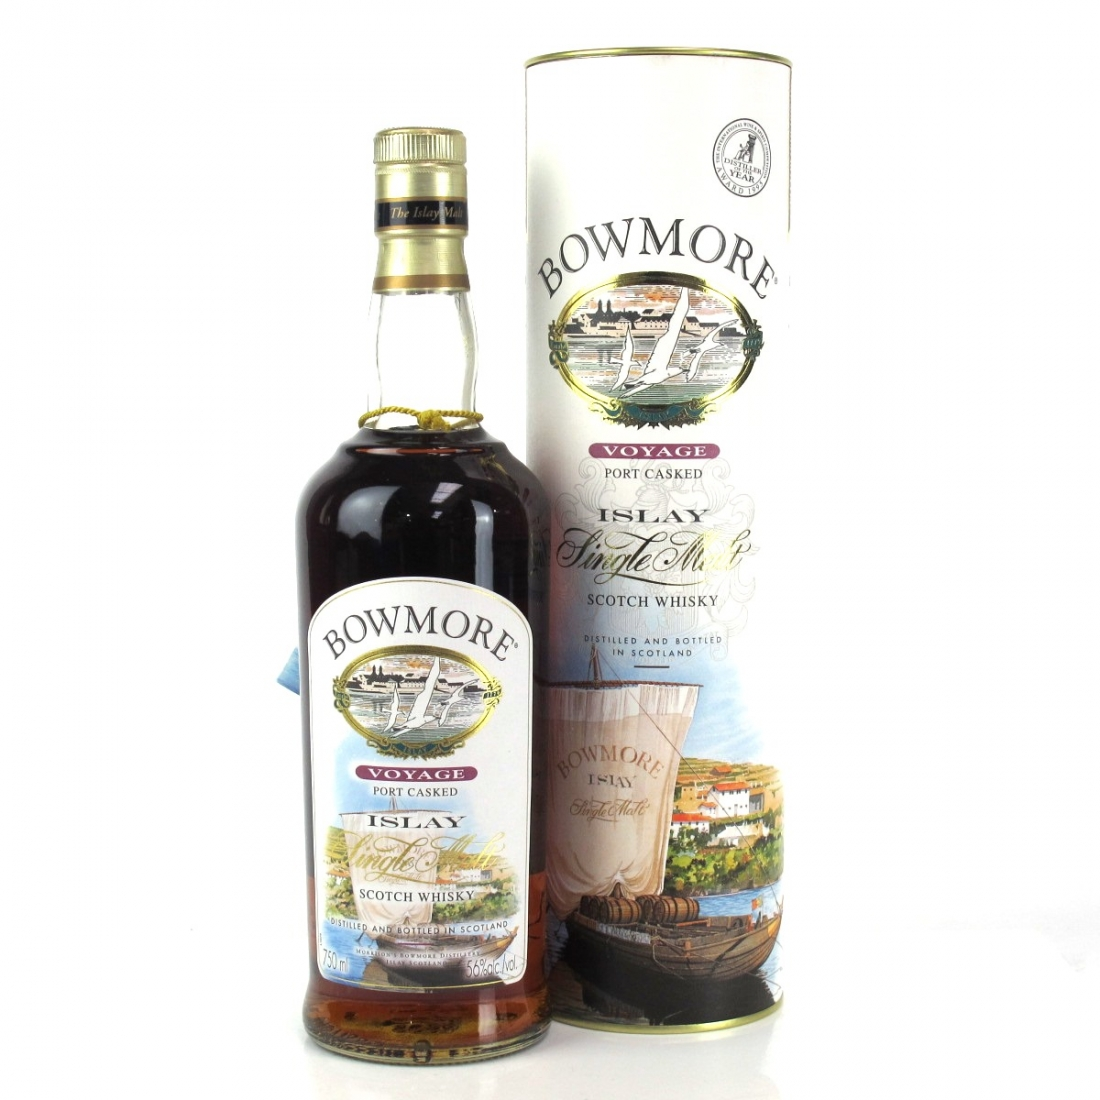 Bowmore Voyage Port Cask Limited Edition 75cl / US Import